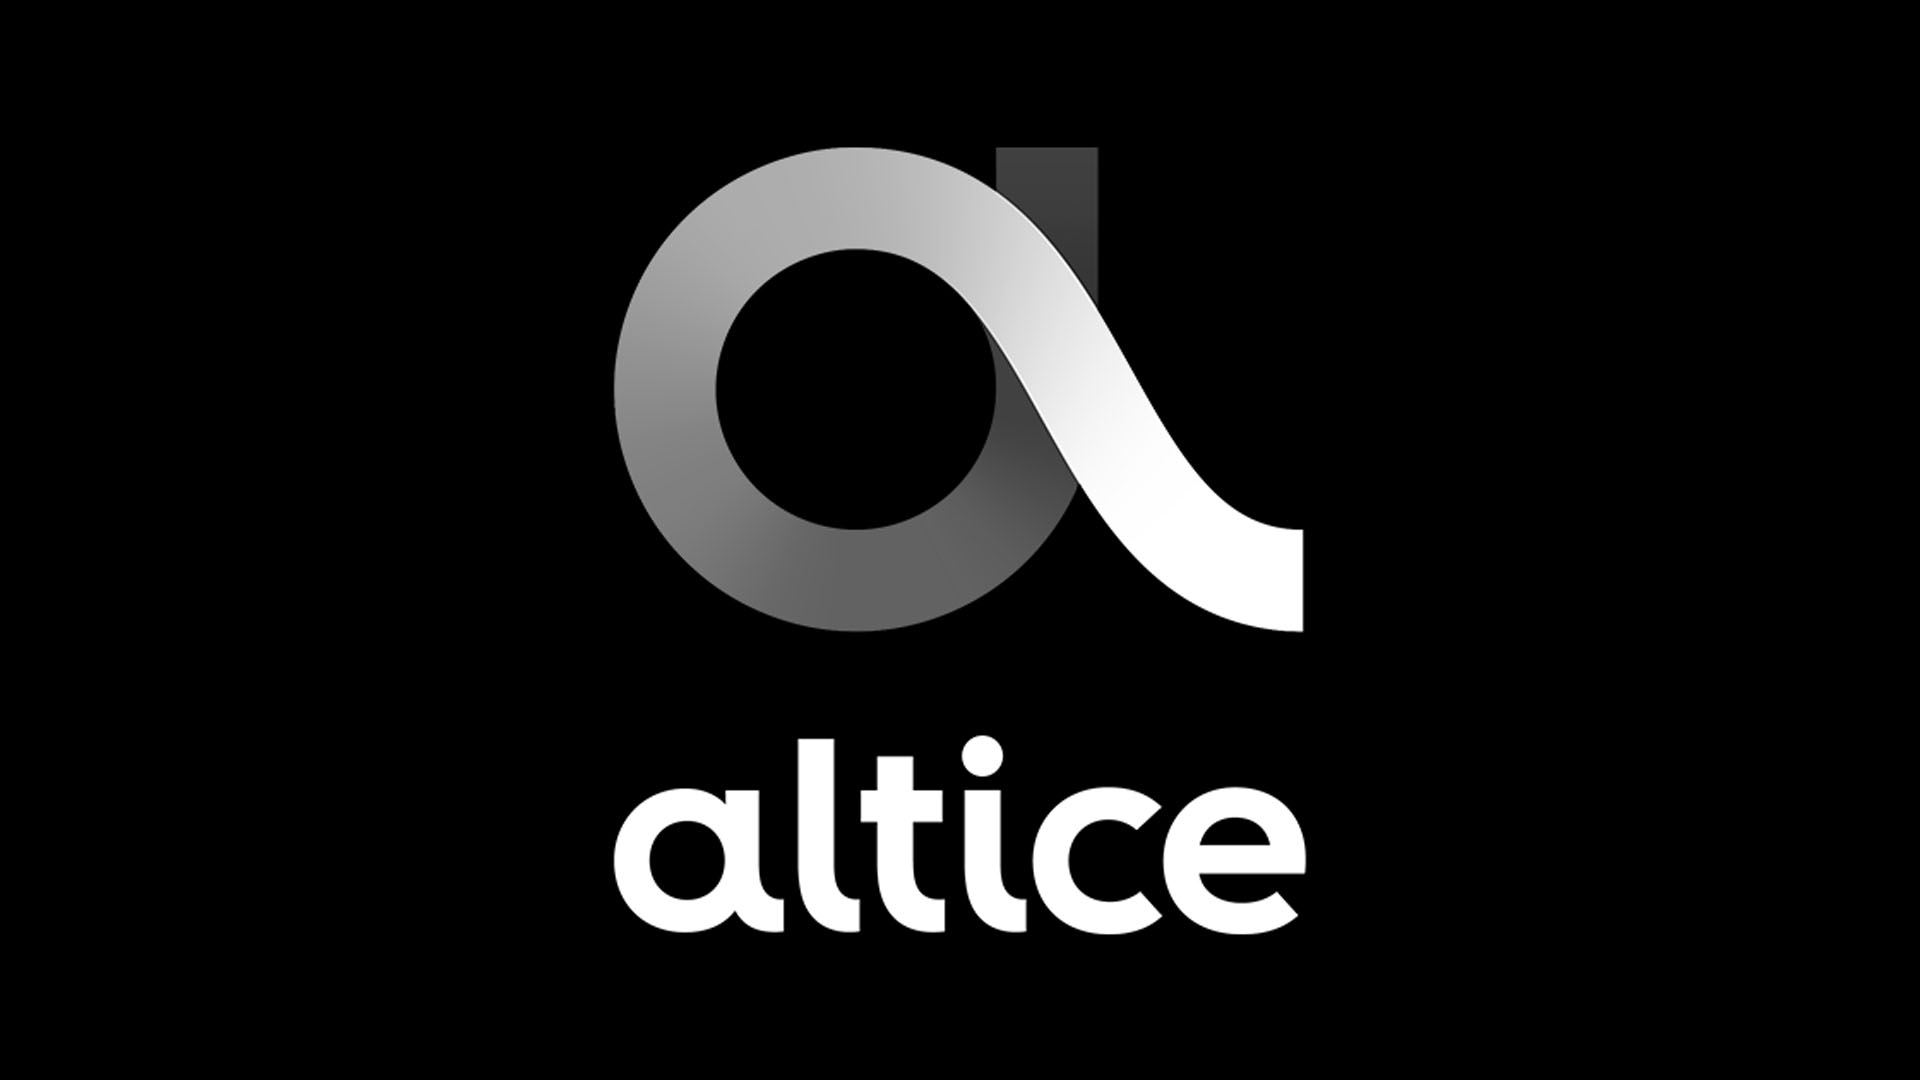 Altice's CEO Alexandre Fonseca shares his vision on Corporate Strategy